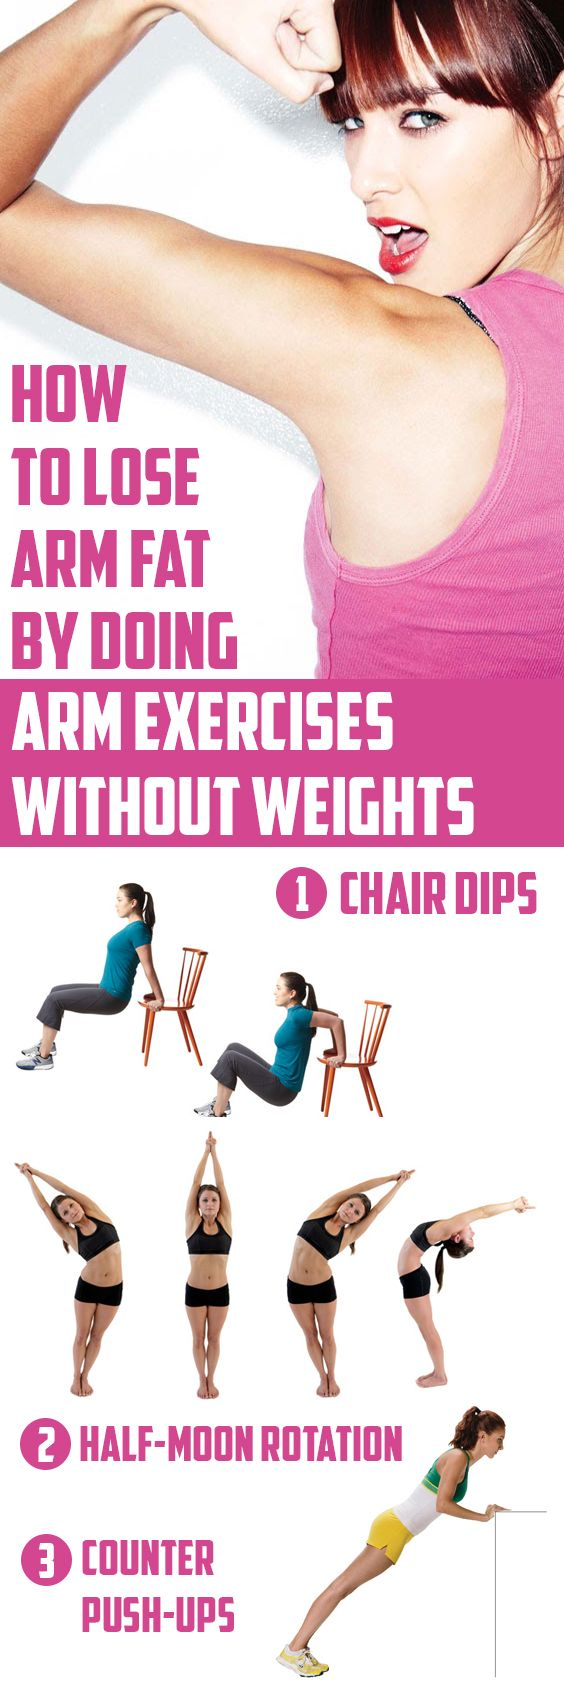 How To Lose Arm Fat By Doing Exercises Without Weights